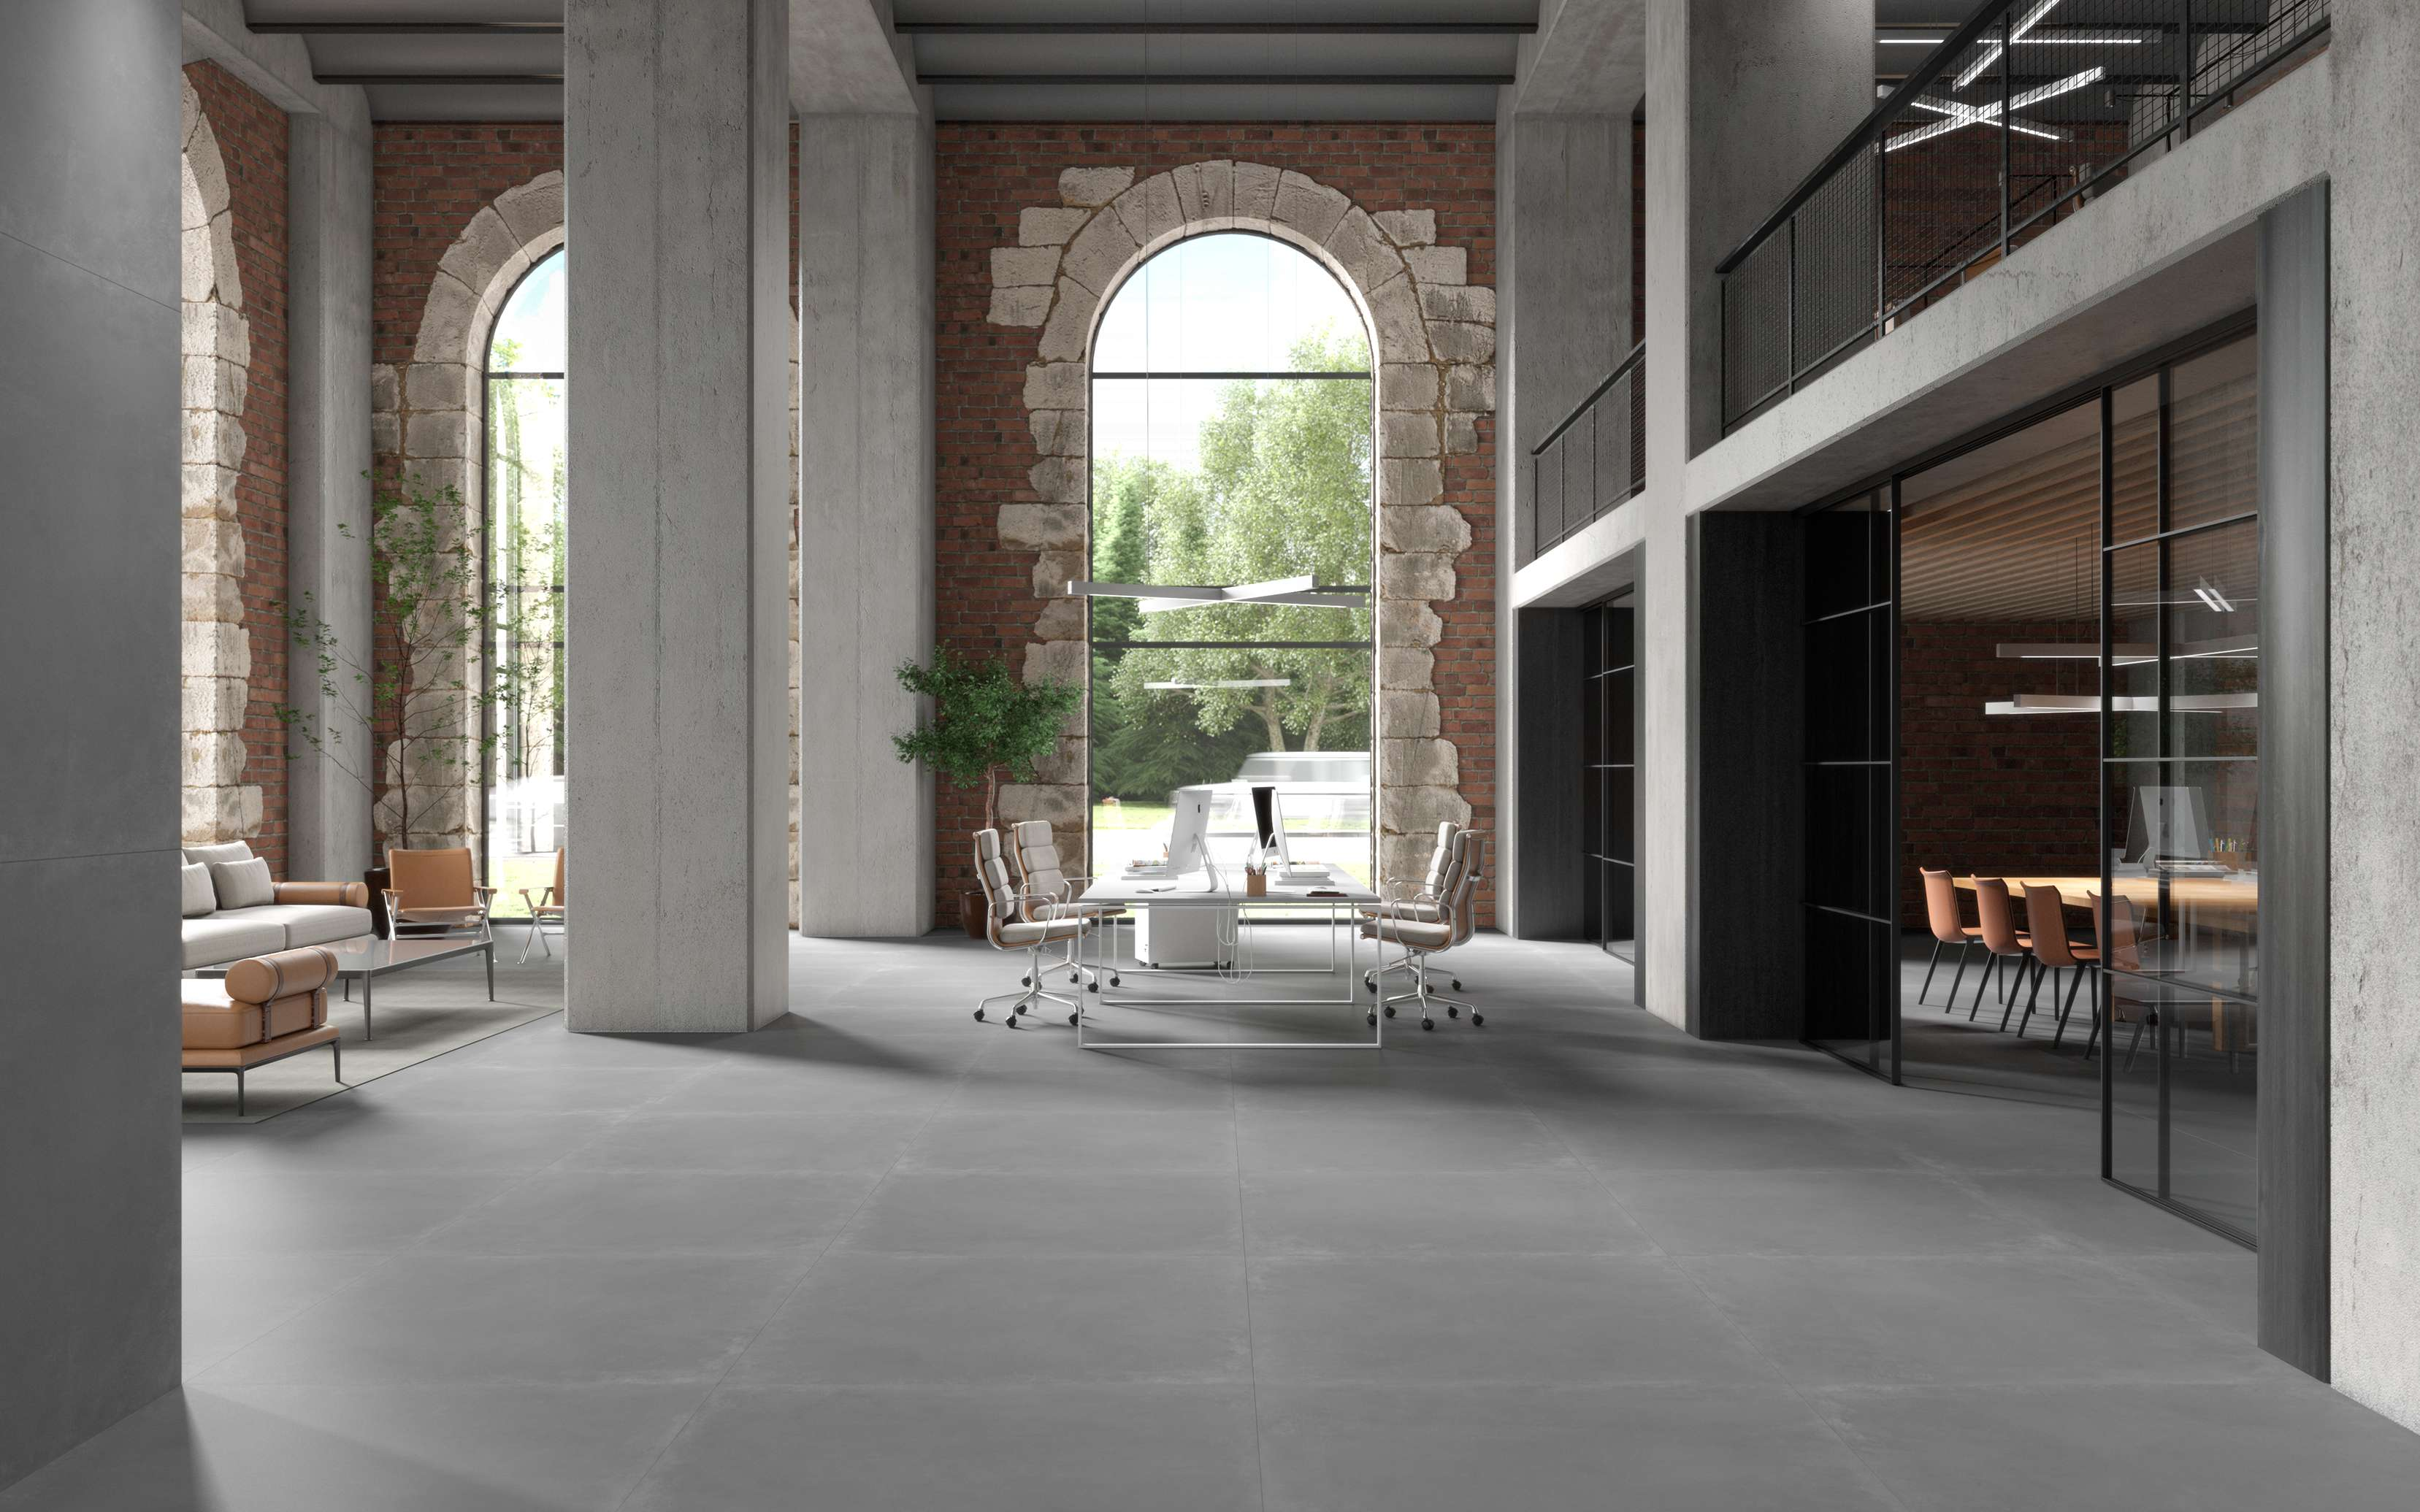 ALL THE ROBUST, PURE ELEGANCE OF STONE AND CLAY INSPIRES THE PORCELAIN STONEWARE SURFACES IN THE ESSENCE COLLECTION.